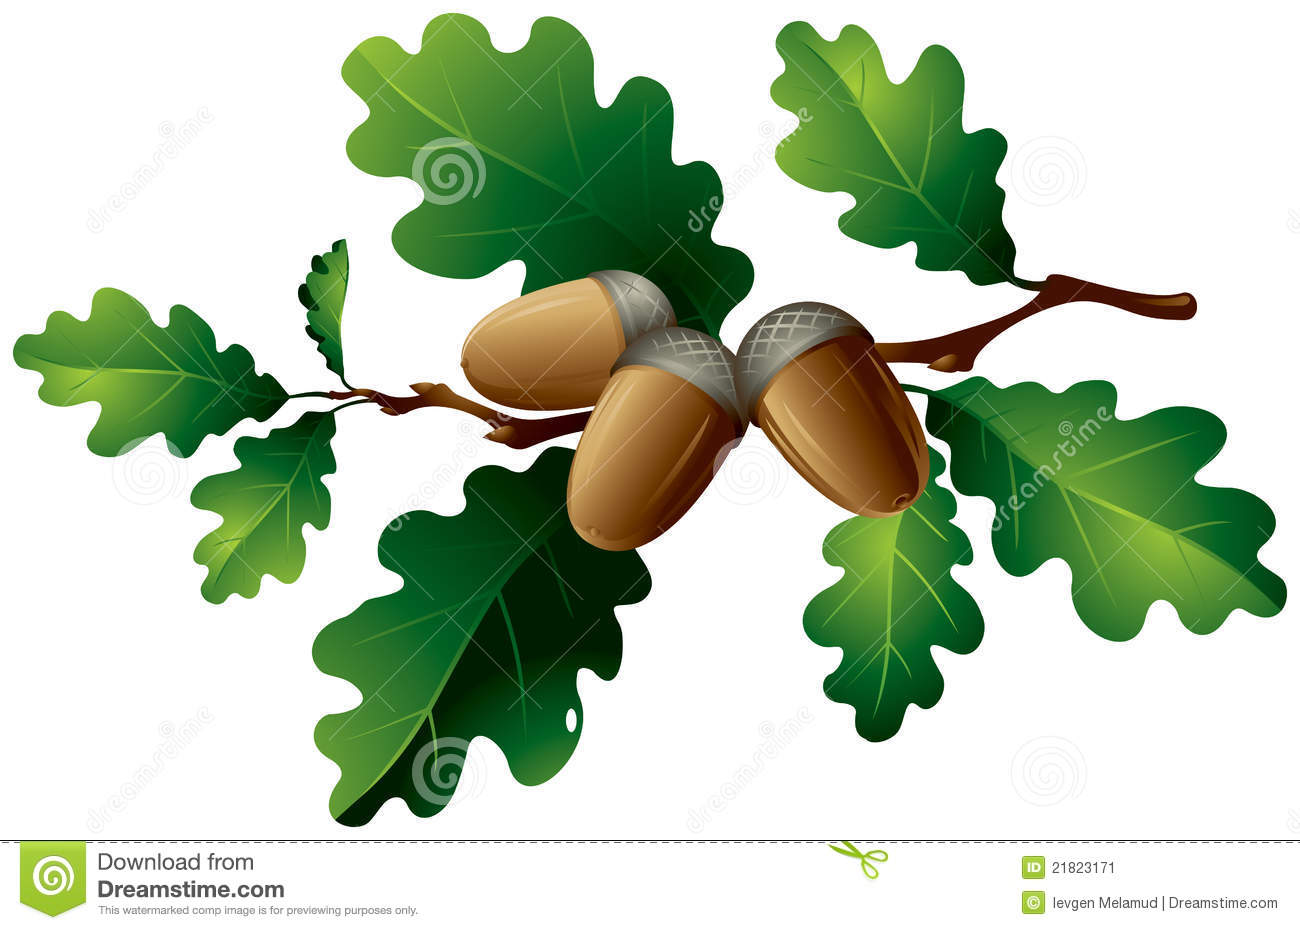 Clipart acorns oak leaves.